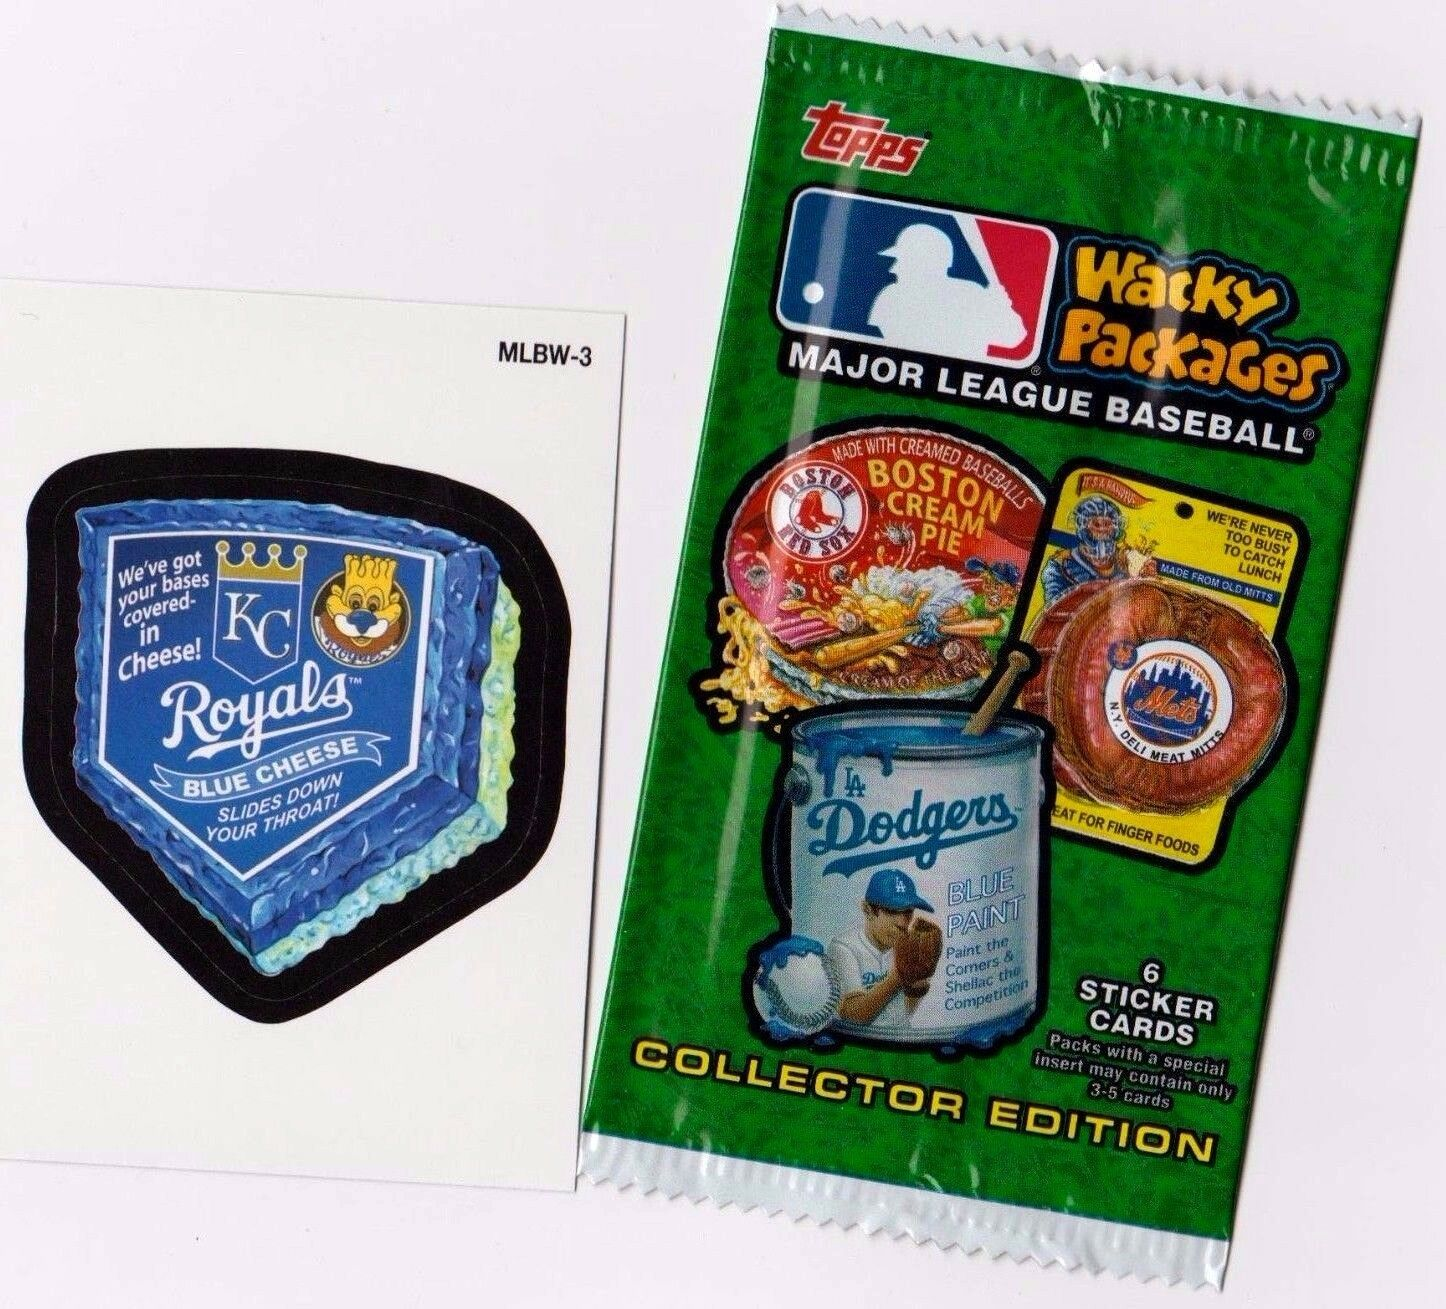 "2016 Wacky Packages Baseball Series 1 ""KC ROYALS CHEESE"" Promo Sticker MLBW-3"